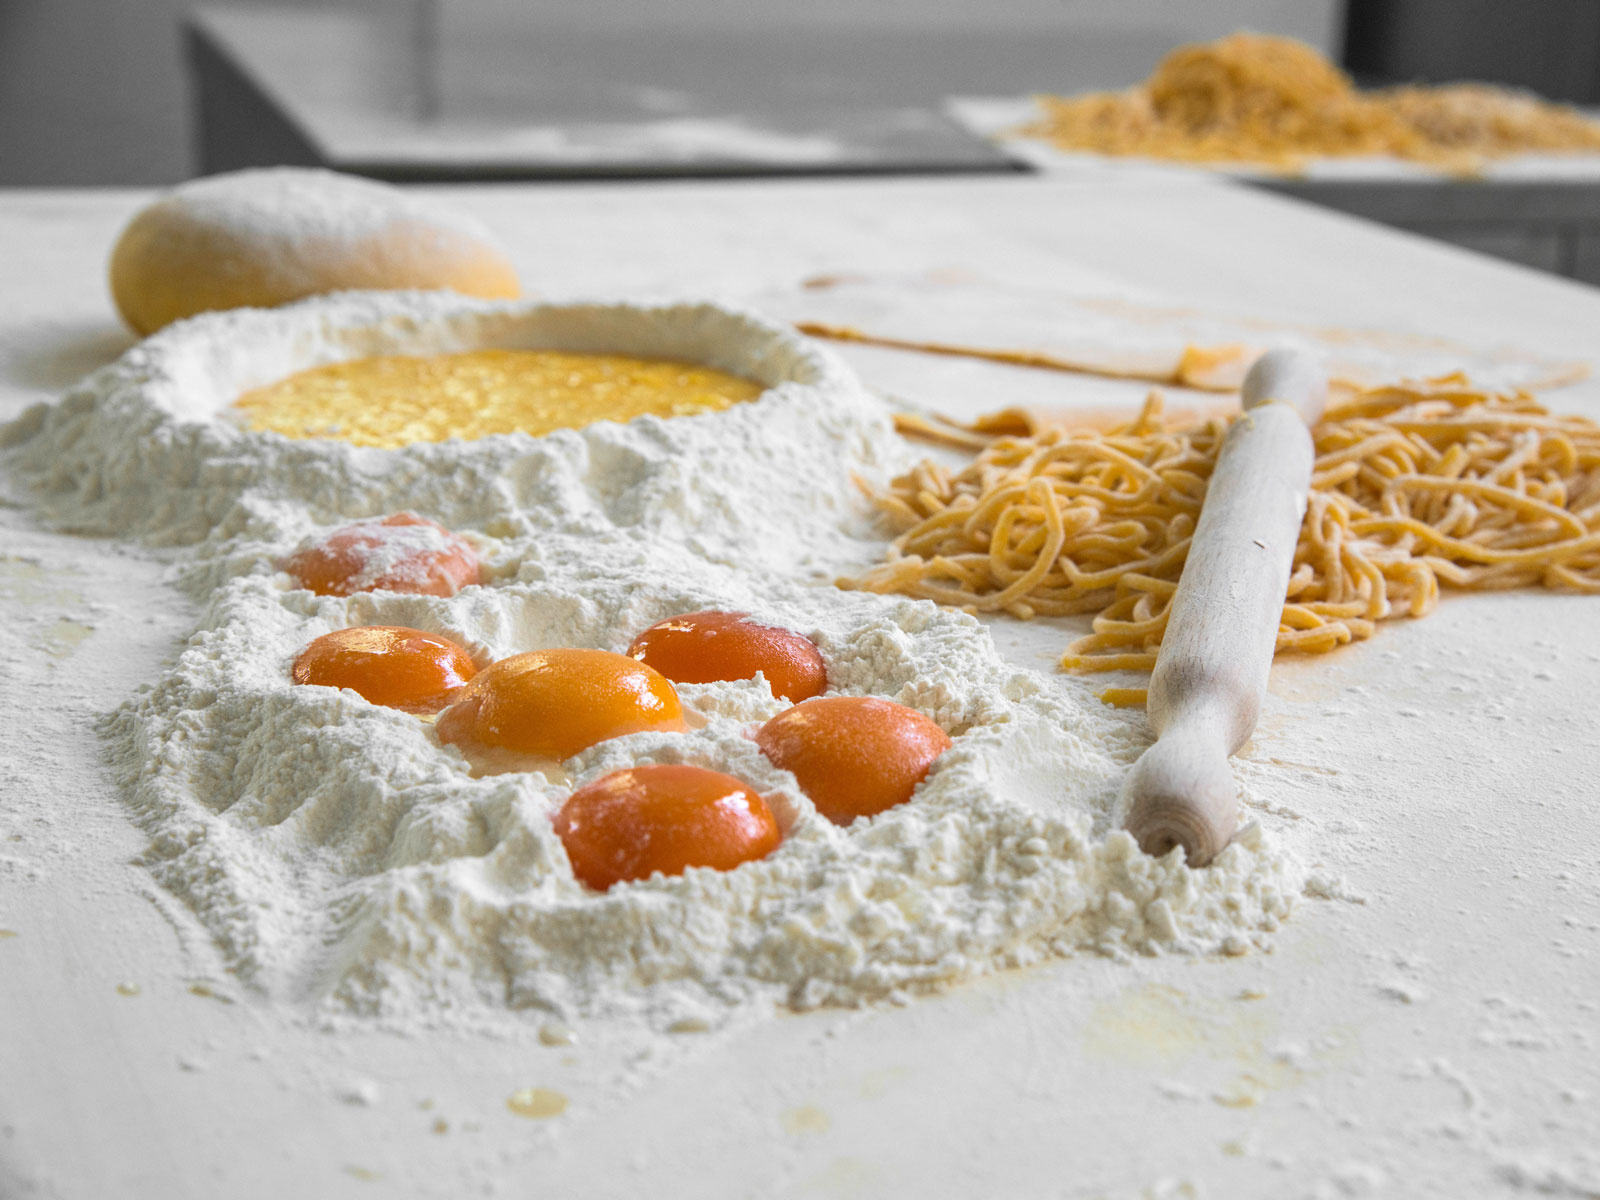 Why L.A. Restaurant Uovo Makes Its Pasta in Bologna